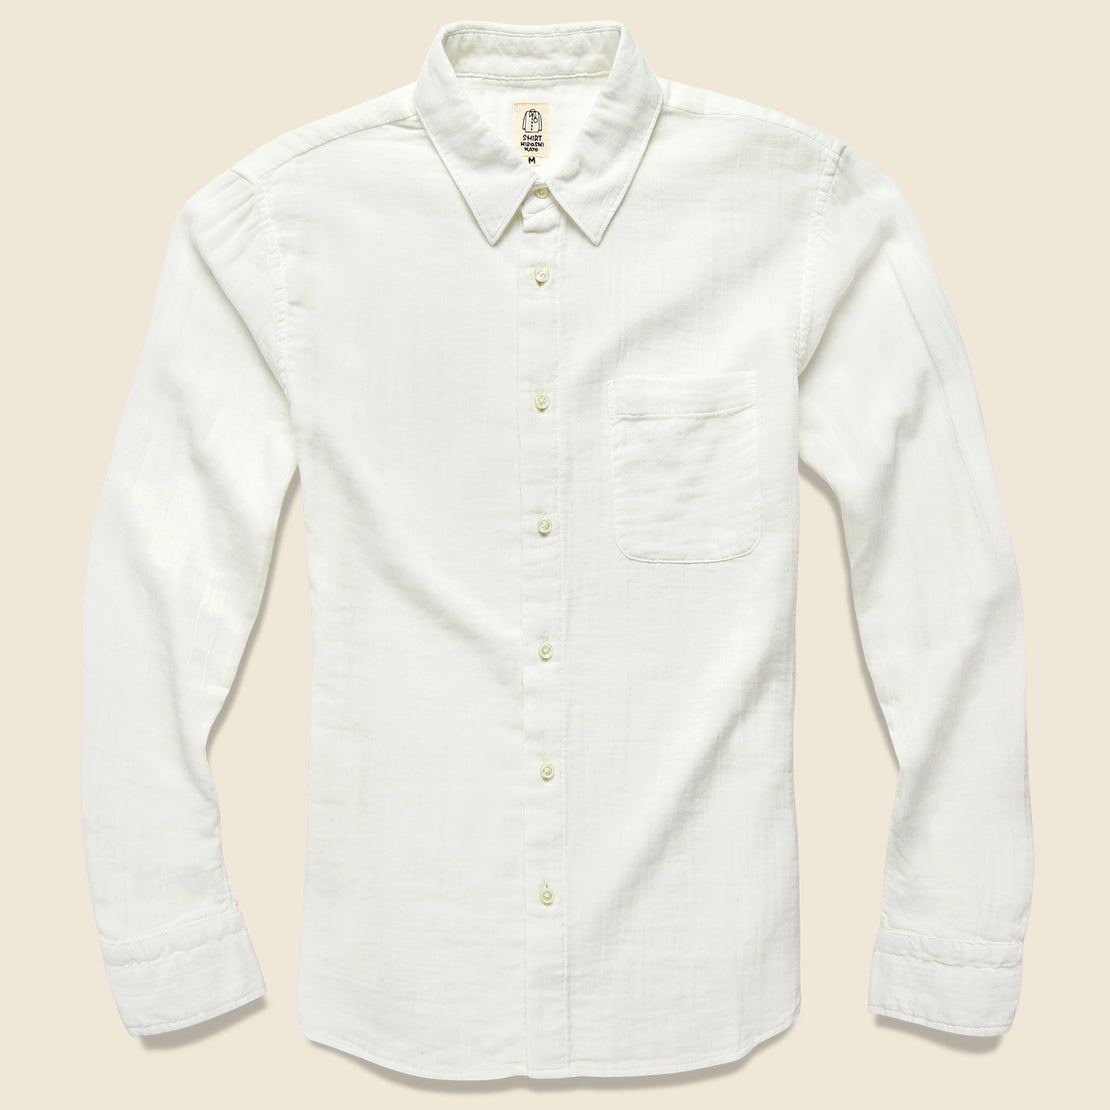 KATO Vintage Double Gauze Shirt - White